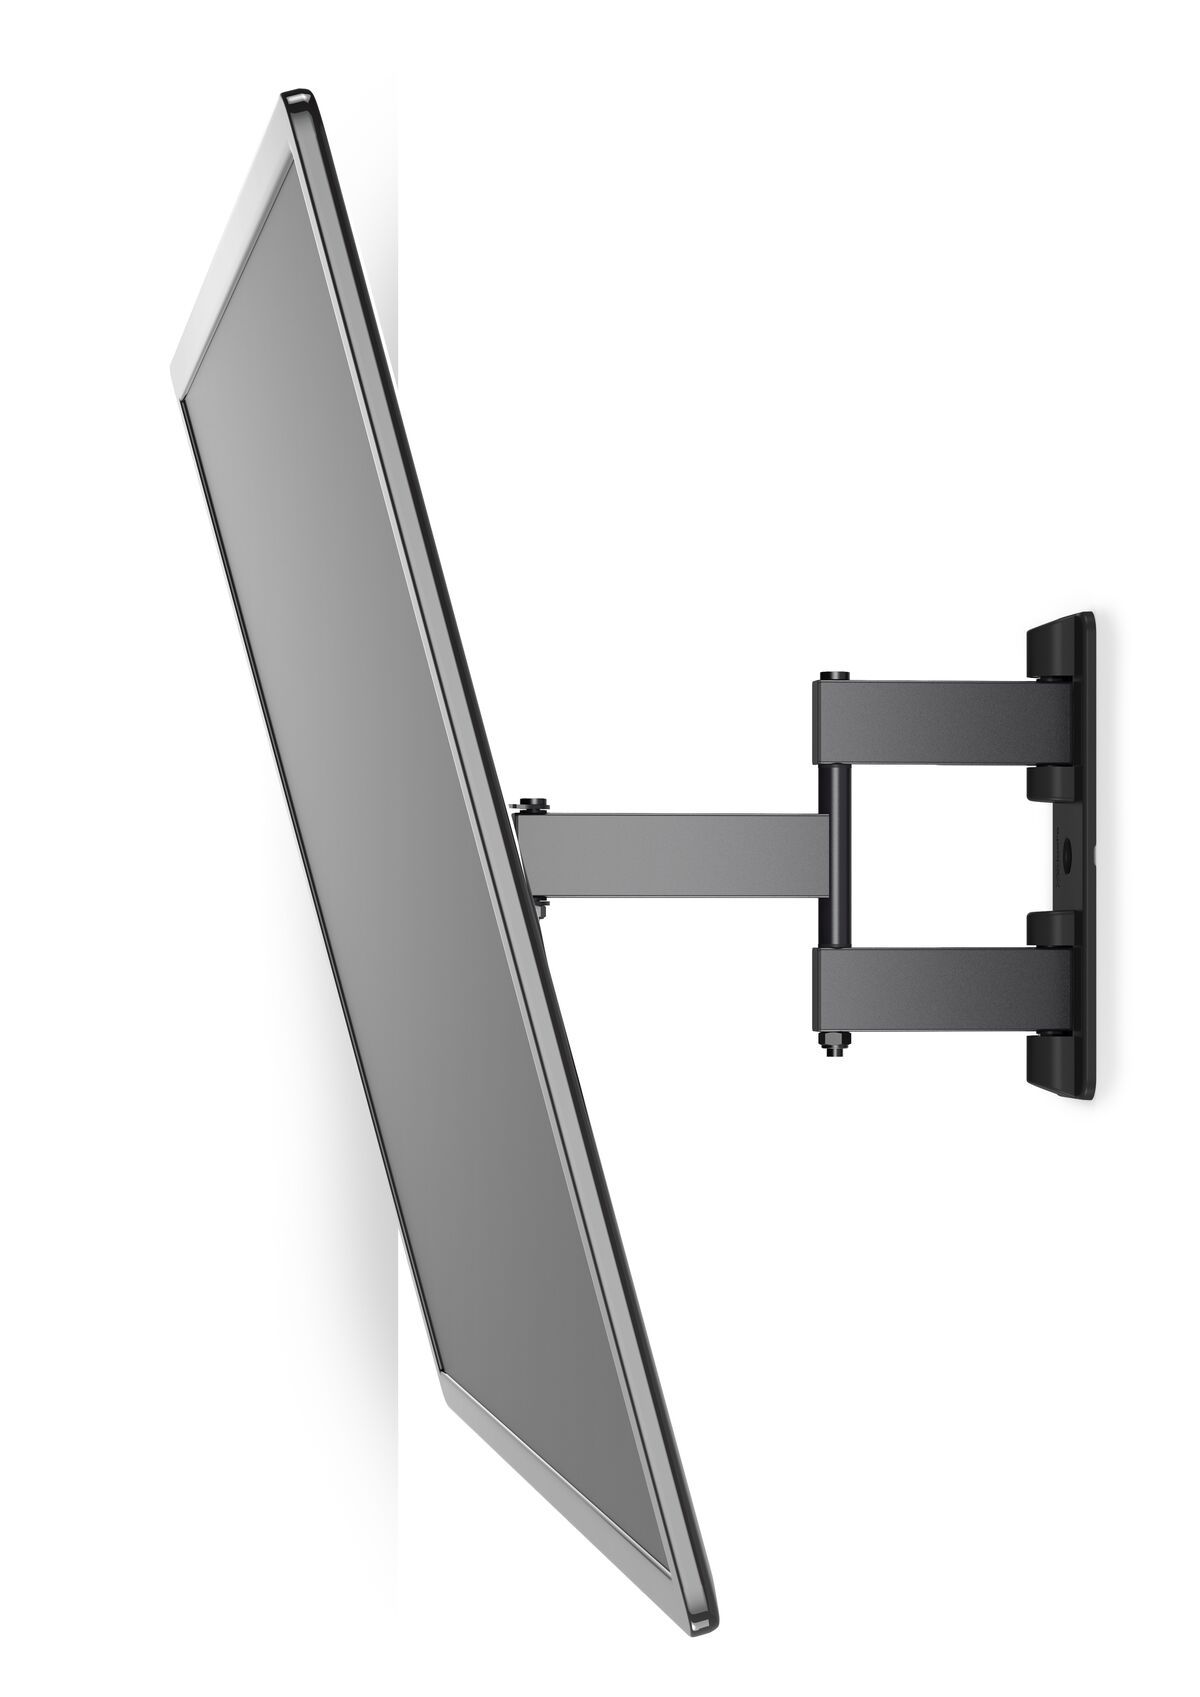 Vogel's MA 3040 (A1) Full-Motion TV Wall Mount - Suitable for 32 up to 55 inch TVs - Full motion (up to 180°) - Tilt up to 10° - White wall